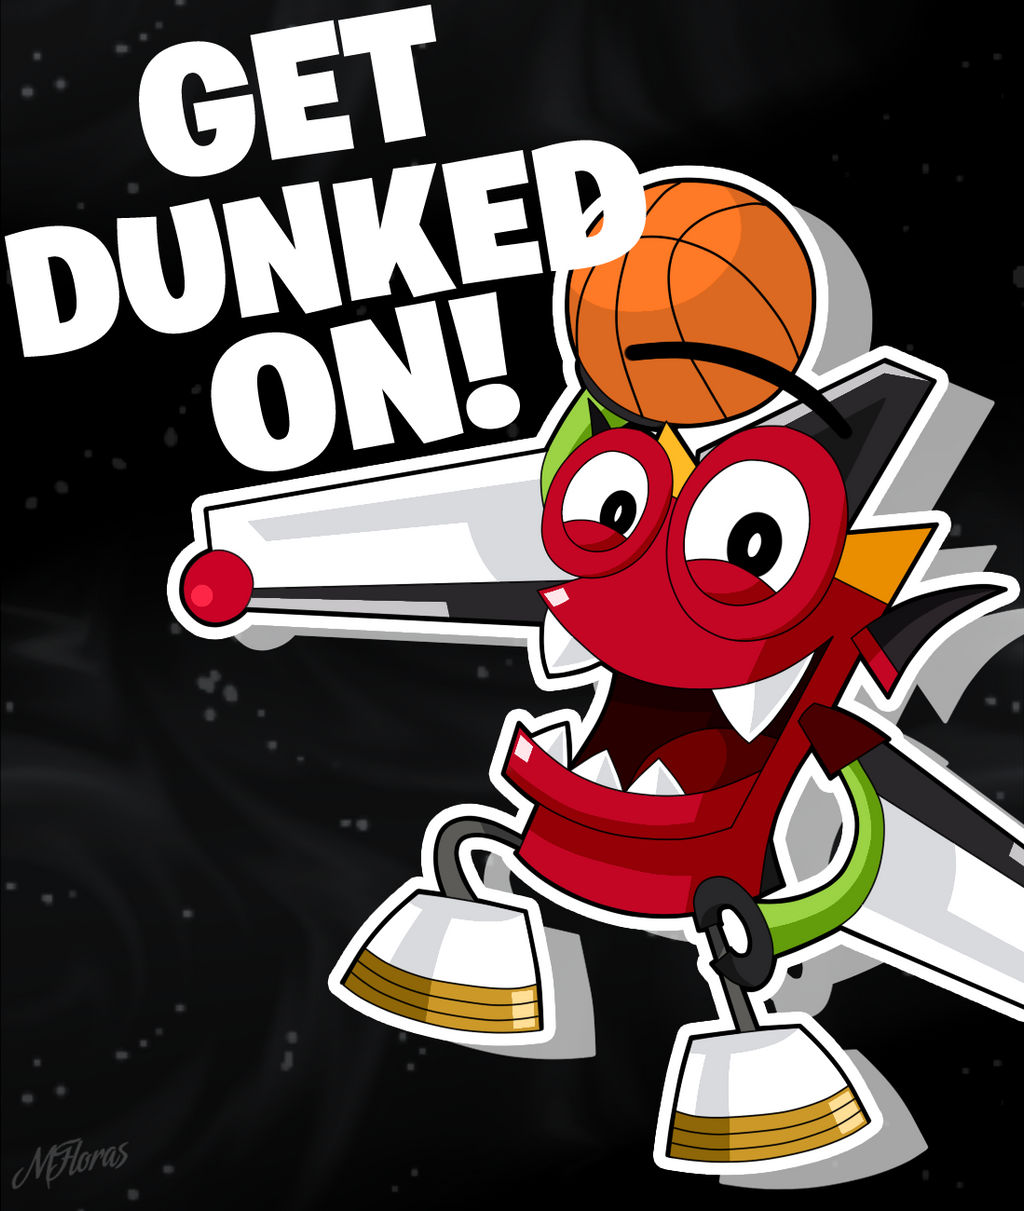 Get Dunked On! By MFloras On DeviantArt